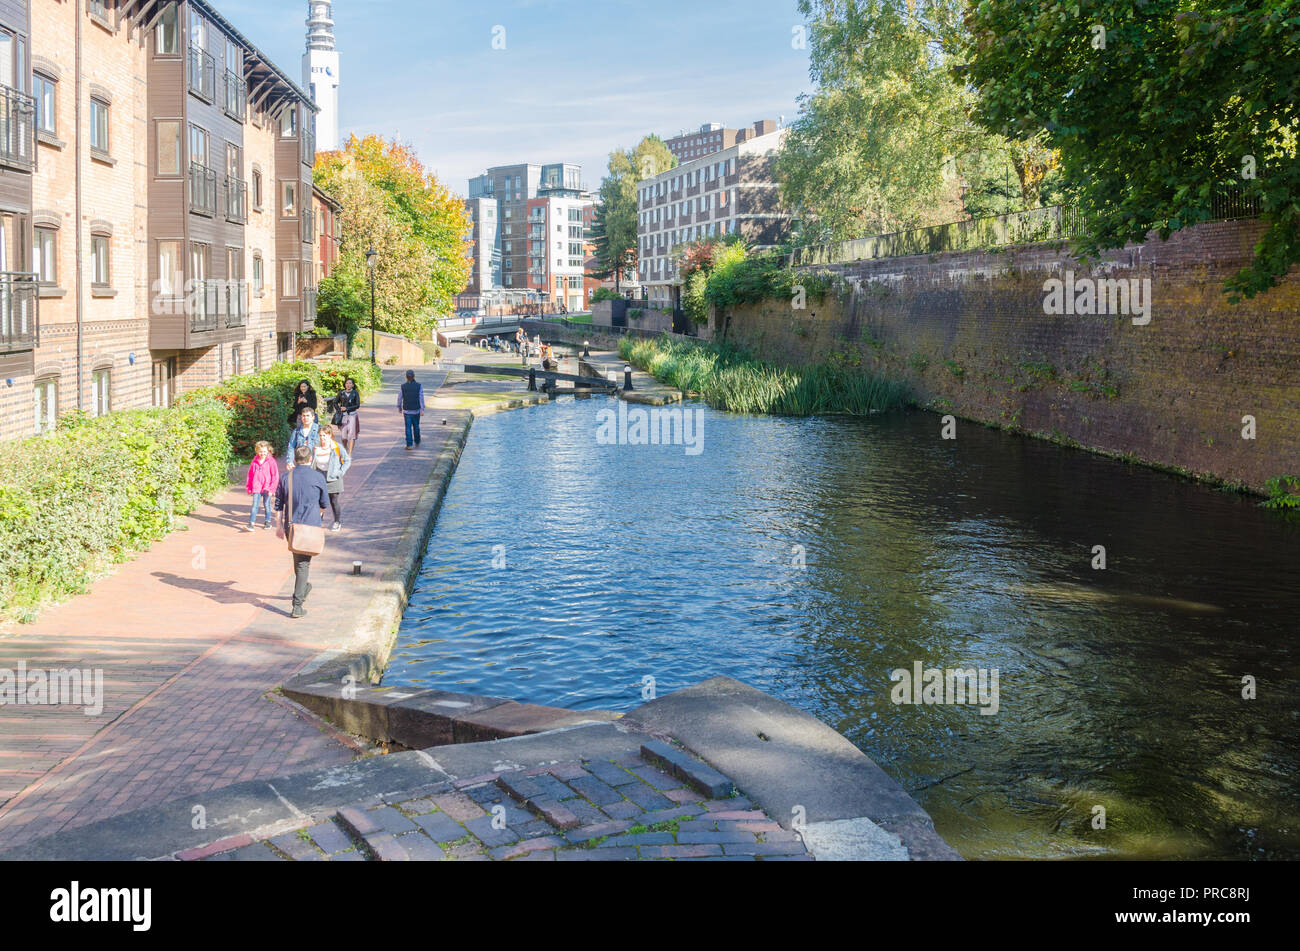 People walking along the canal towpath at Cambrian Wharf, Birmingham in autumn sunshine - Stock Image